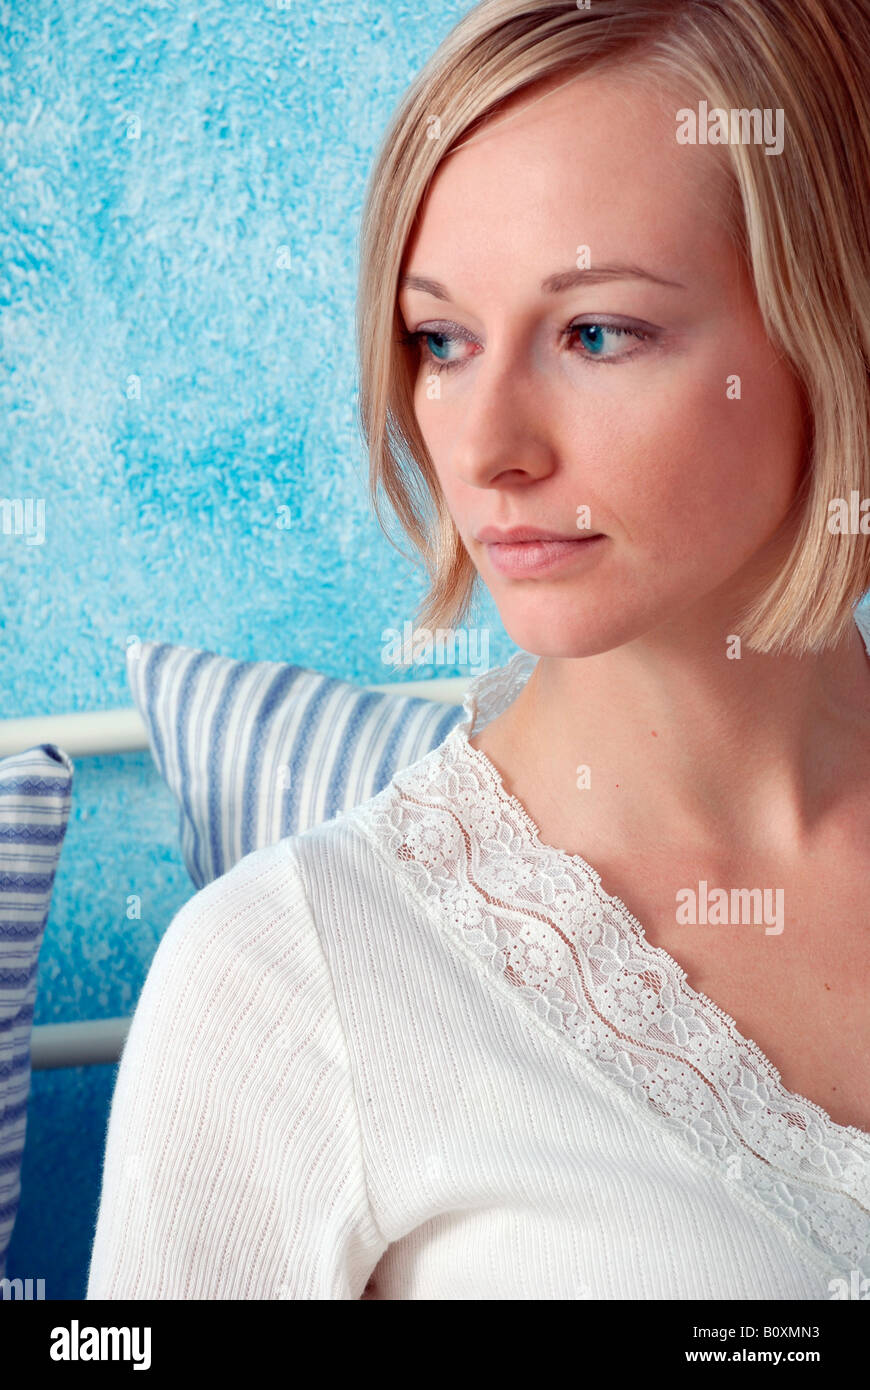 Blonde woman, portrait Photo Stock